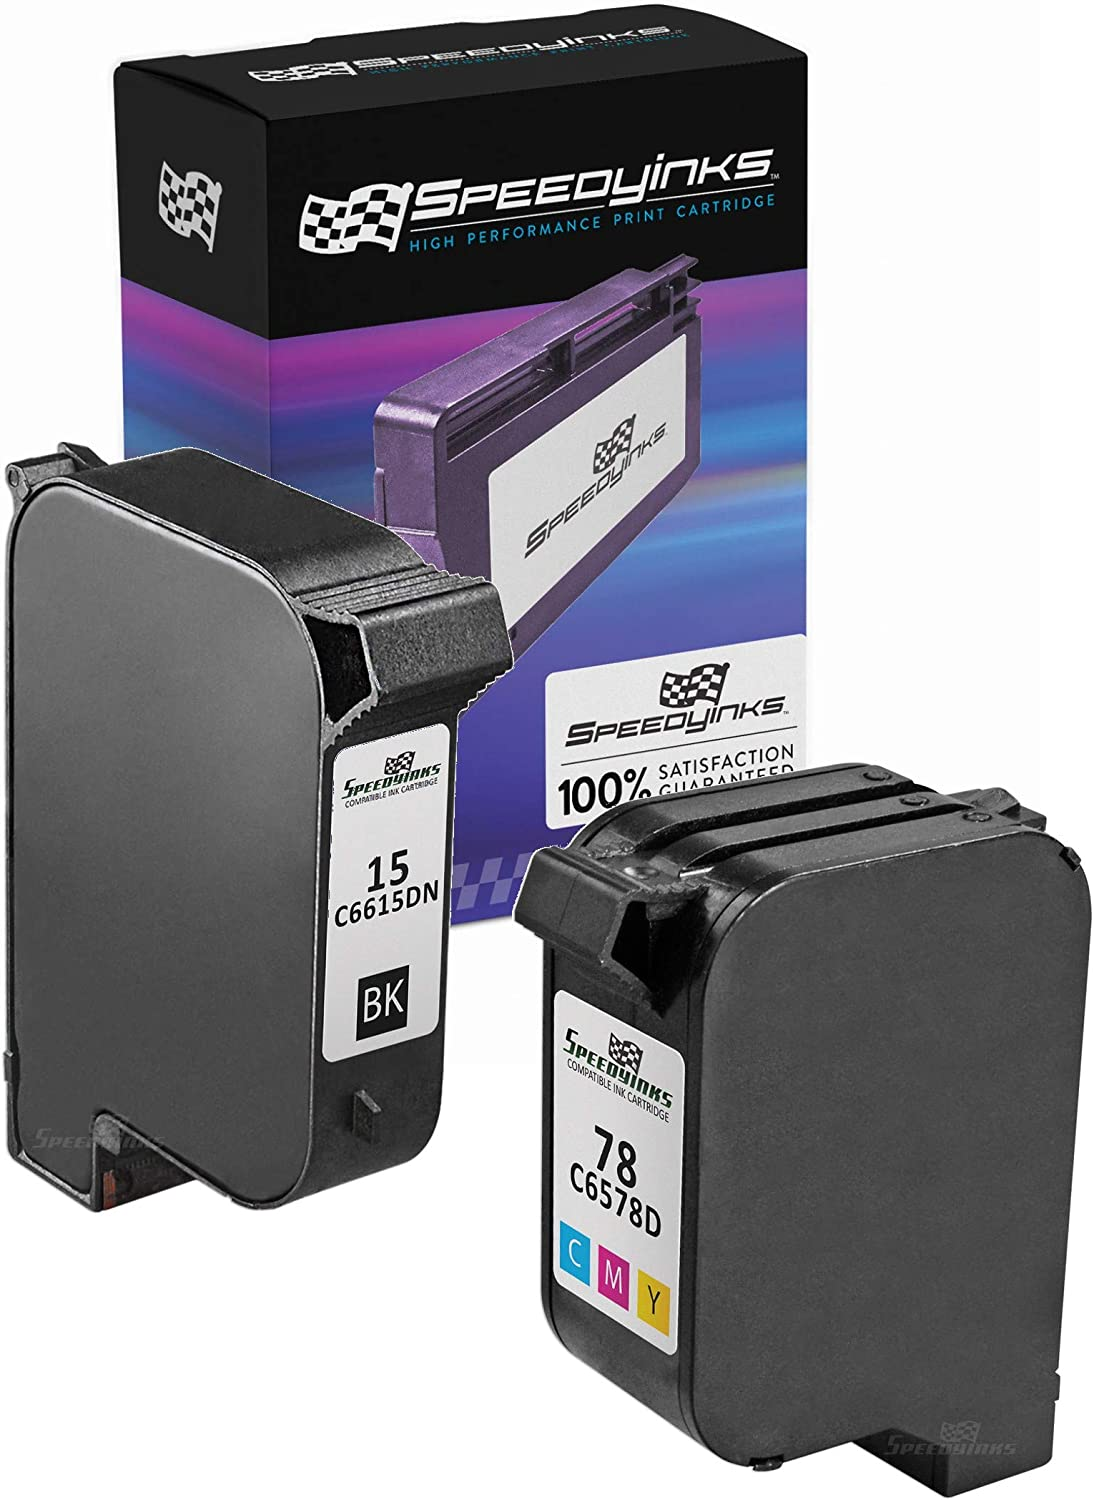 Speedy Inks Remanufactured Ink Cartridge Replacement for HP 15 & HP 78 (1 Black, 1 Color, 2-Pack)